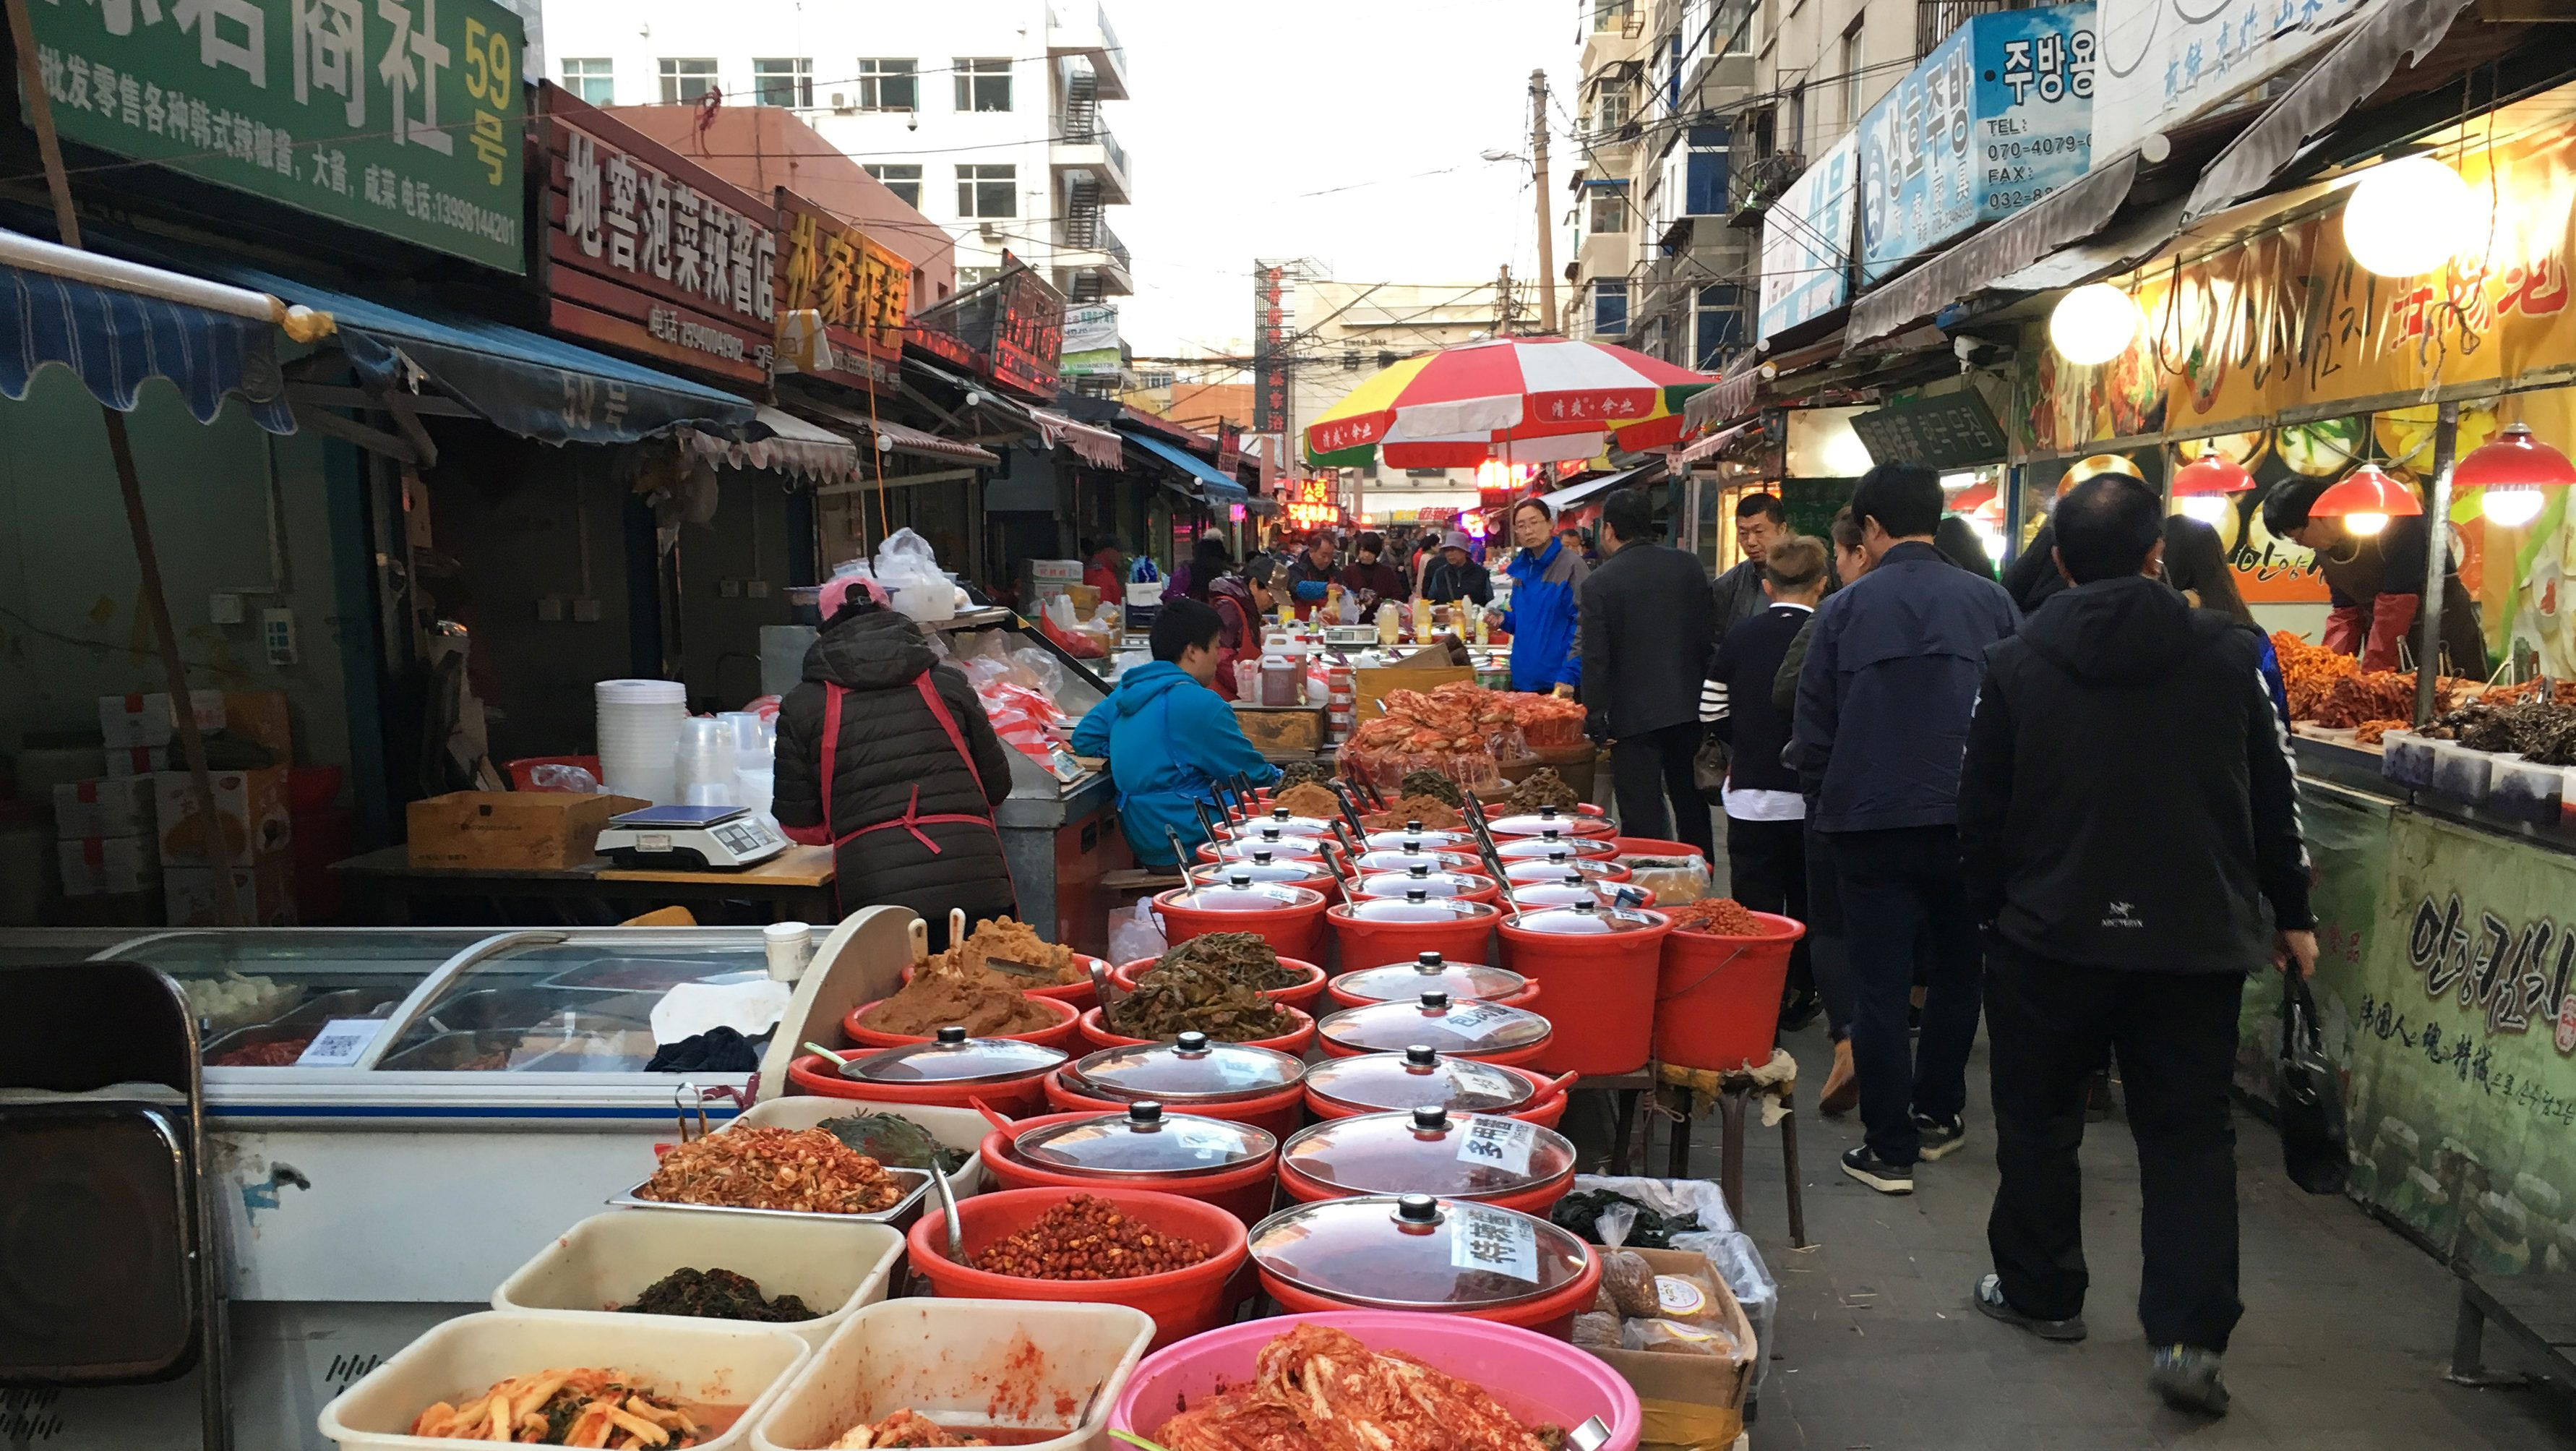 Kimchi and other food are sold at a market in Shenyang's Xita District, Liaoning province, China November 1, 2017. Picture taken November 1, 2017. REUTERS/ Sue-Lin Wong - RC179AF5E8F0